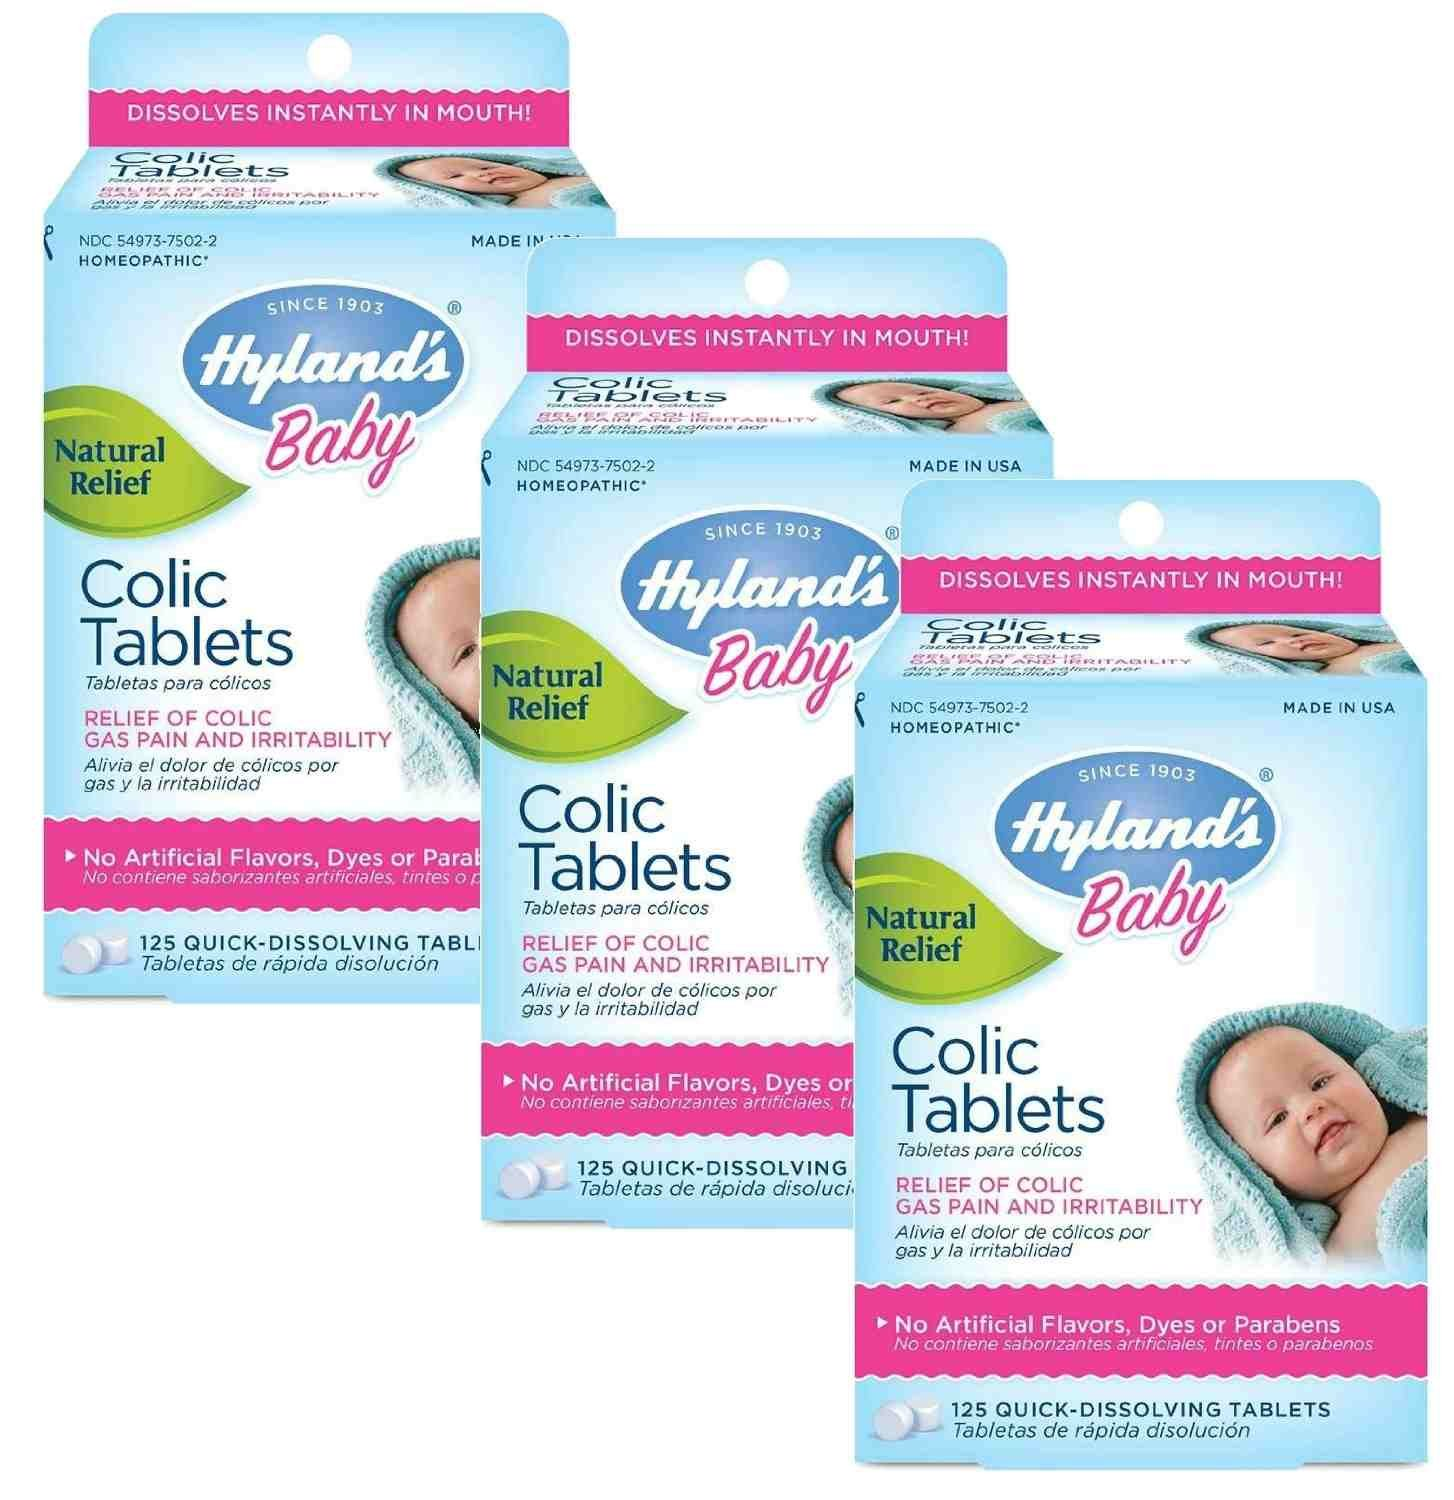 Hyland's Baby Colic Tablets, Natural Relief of Colic Gas Pain and Irritability,125 Count (Pack of 3) Hyland' s Baby